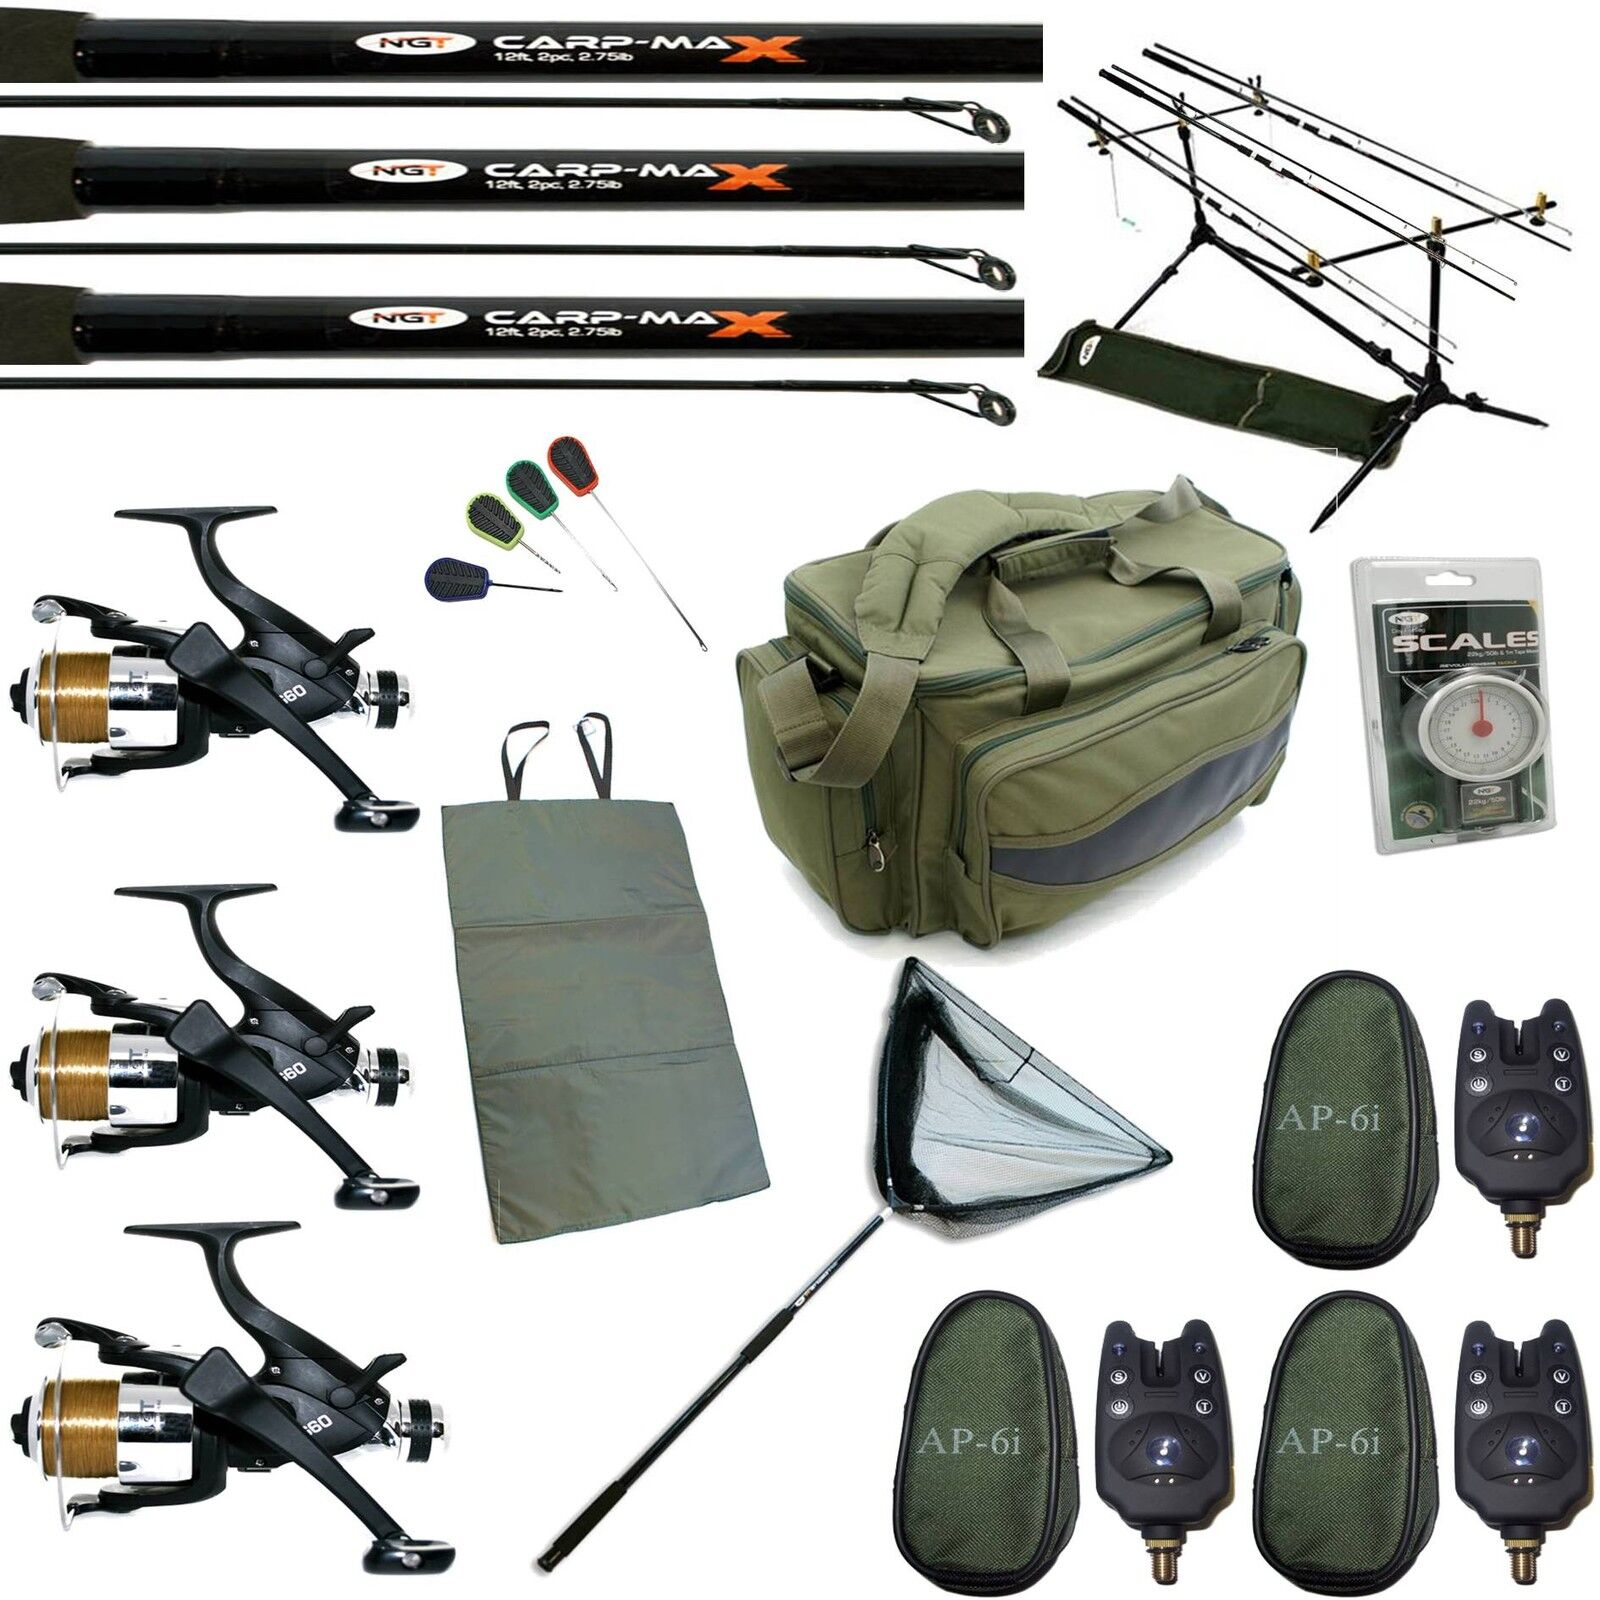 Full Carp Fishing set up 3 Rods 3 Reels Bag Alarms Net 4pc Green Insulated bag